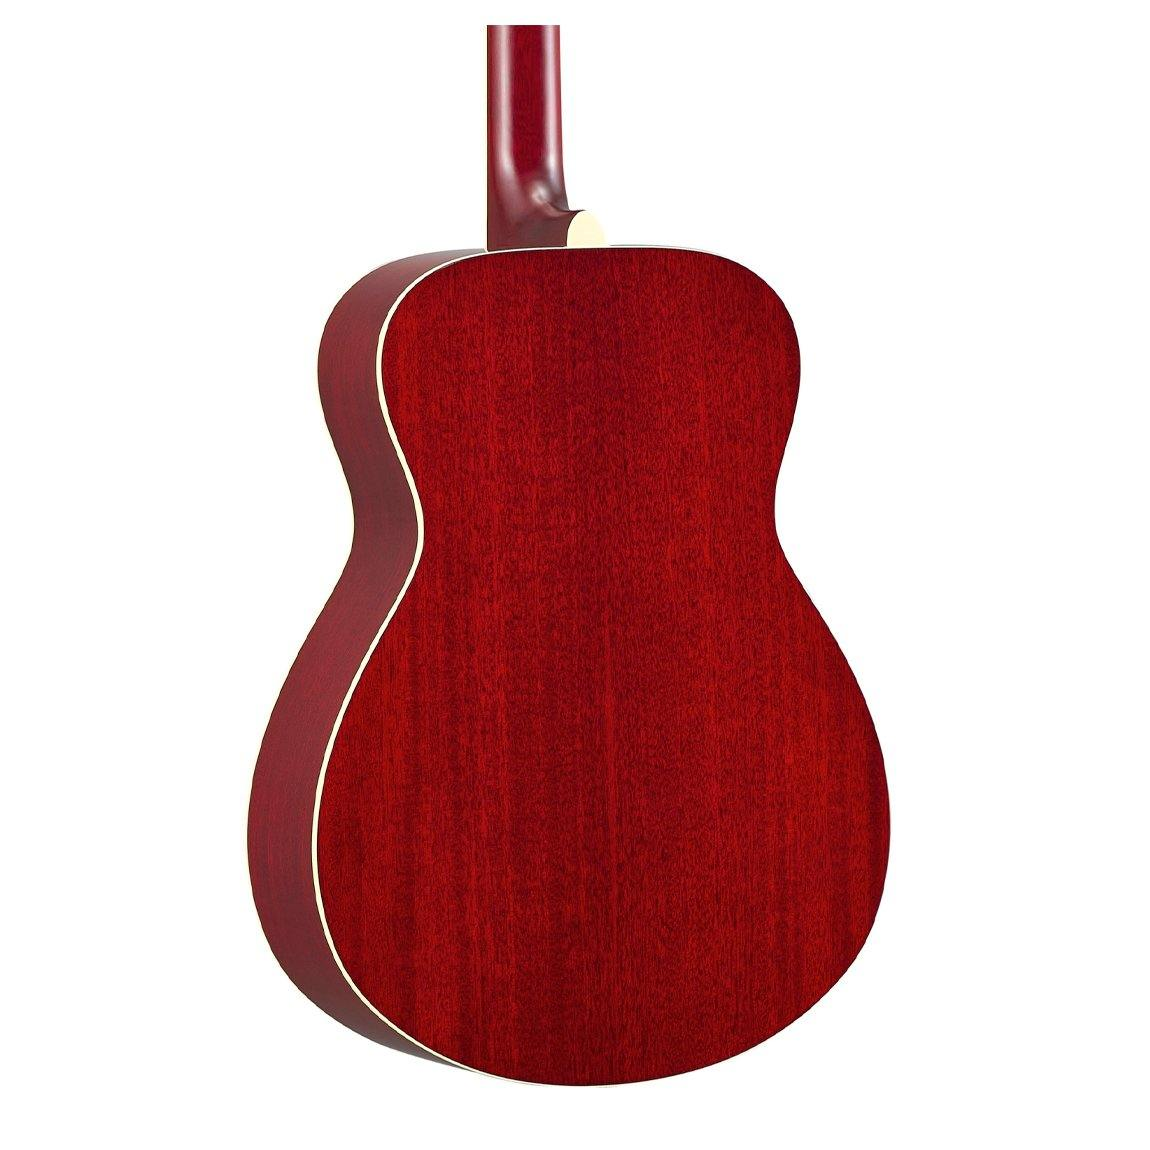 Yamaha FS-TA Transacoustic Concert Guitar - Ruby Red - ICONS Shop